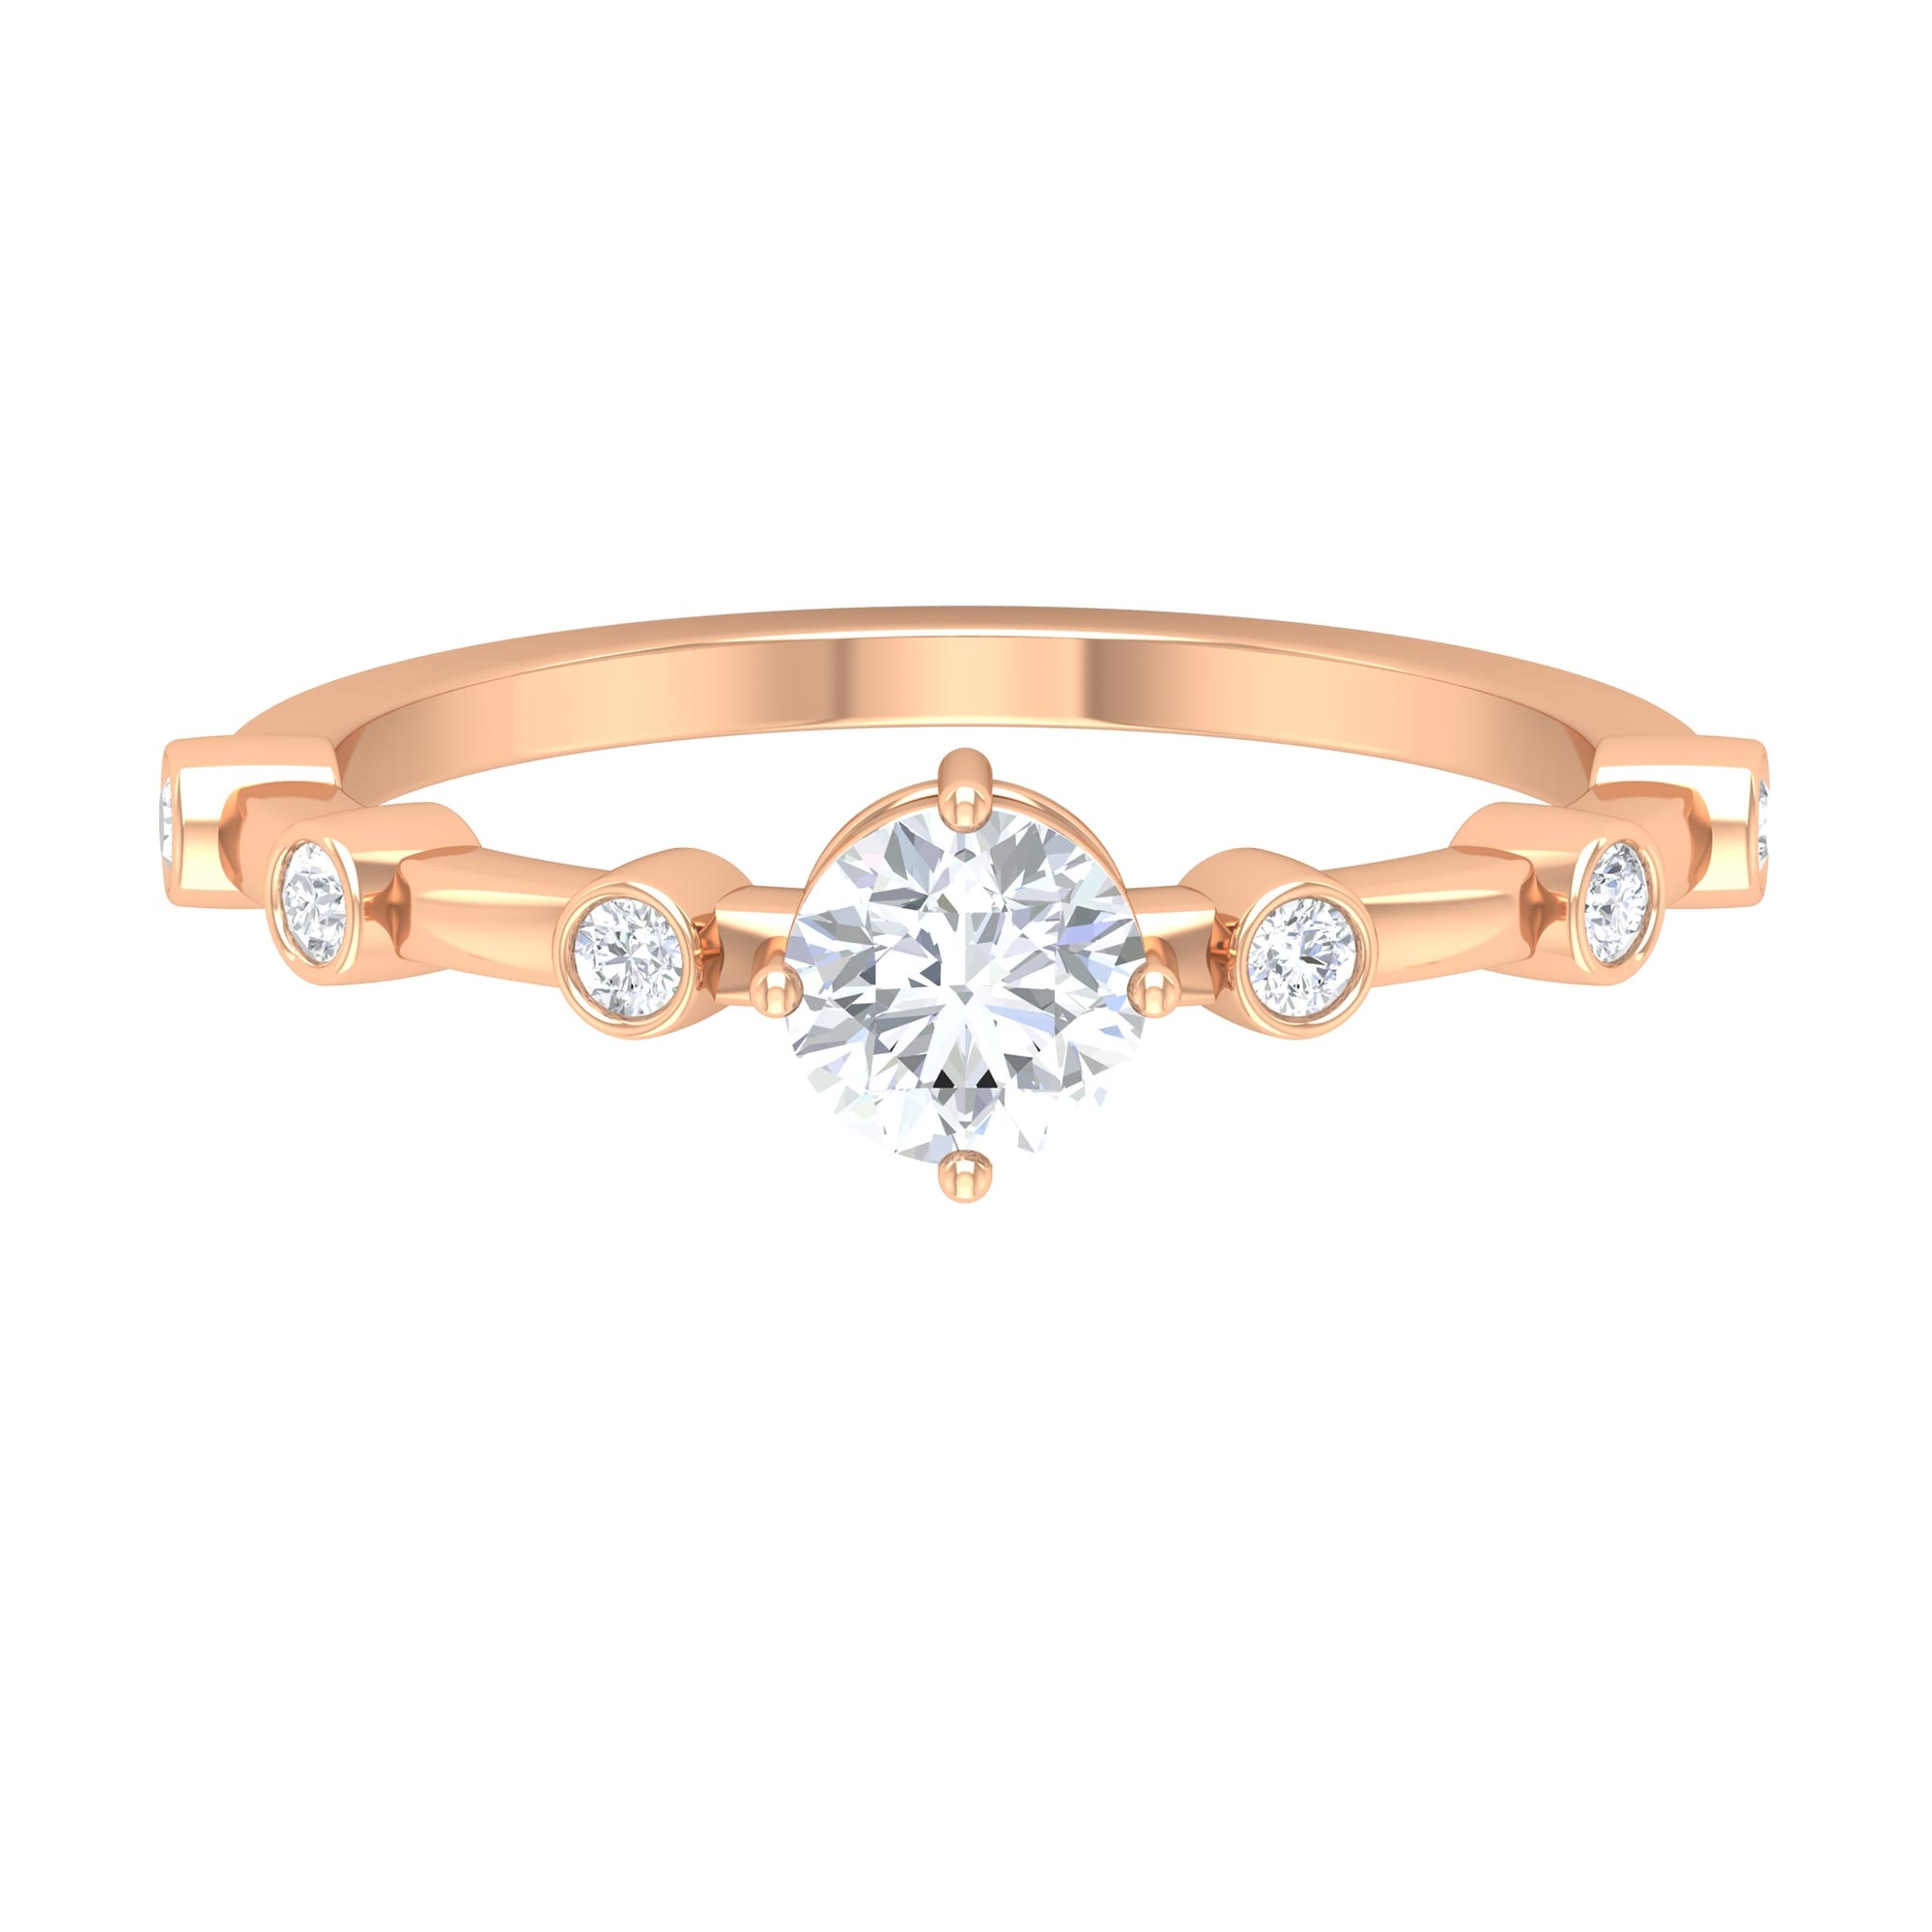 3/4 CT Round Cut Diamond Solitaire Ring in 4 Prong Diagonal Setting with Spaced Set Side Stones